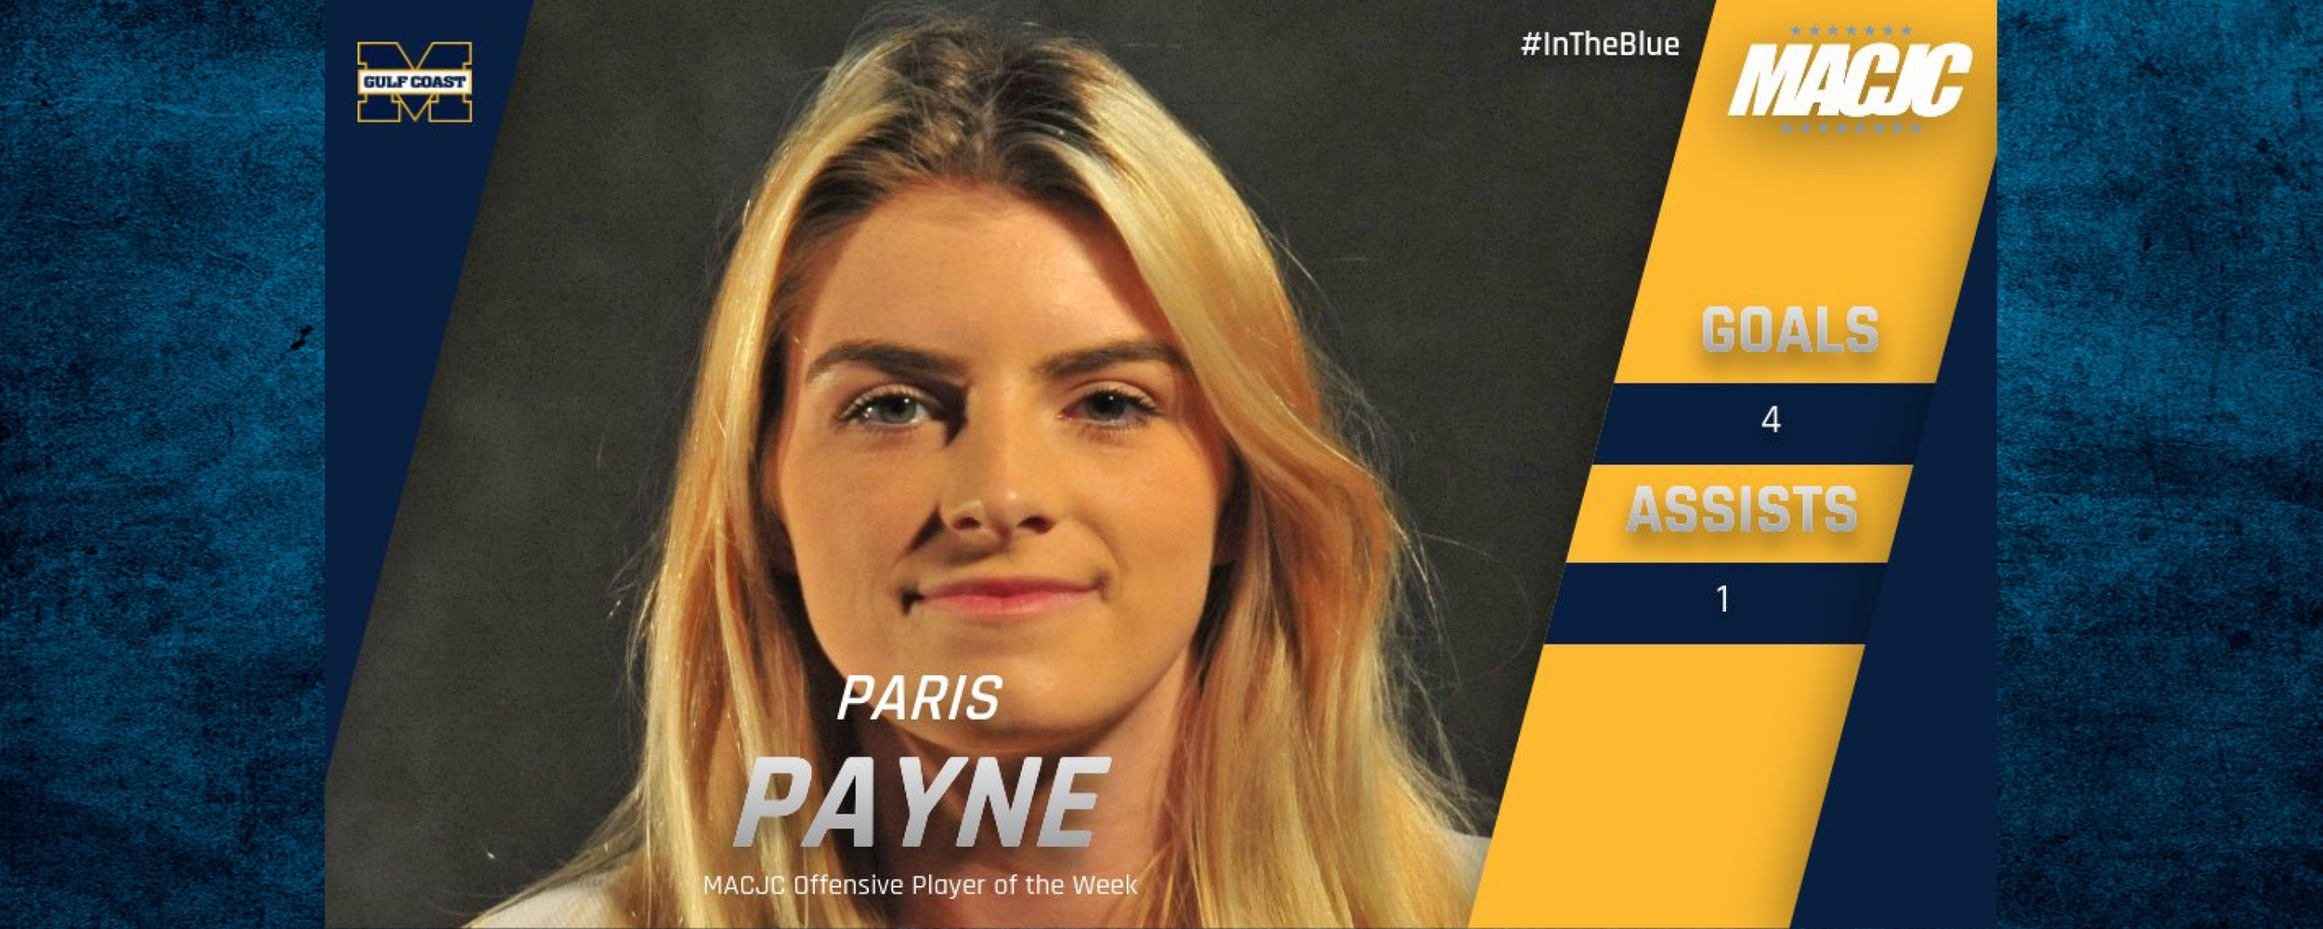 Payne named MACJC Player of the Week